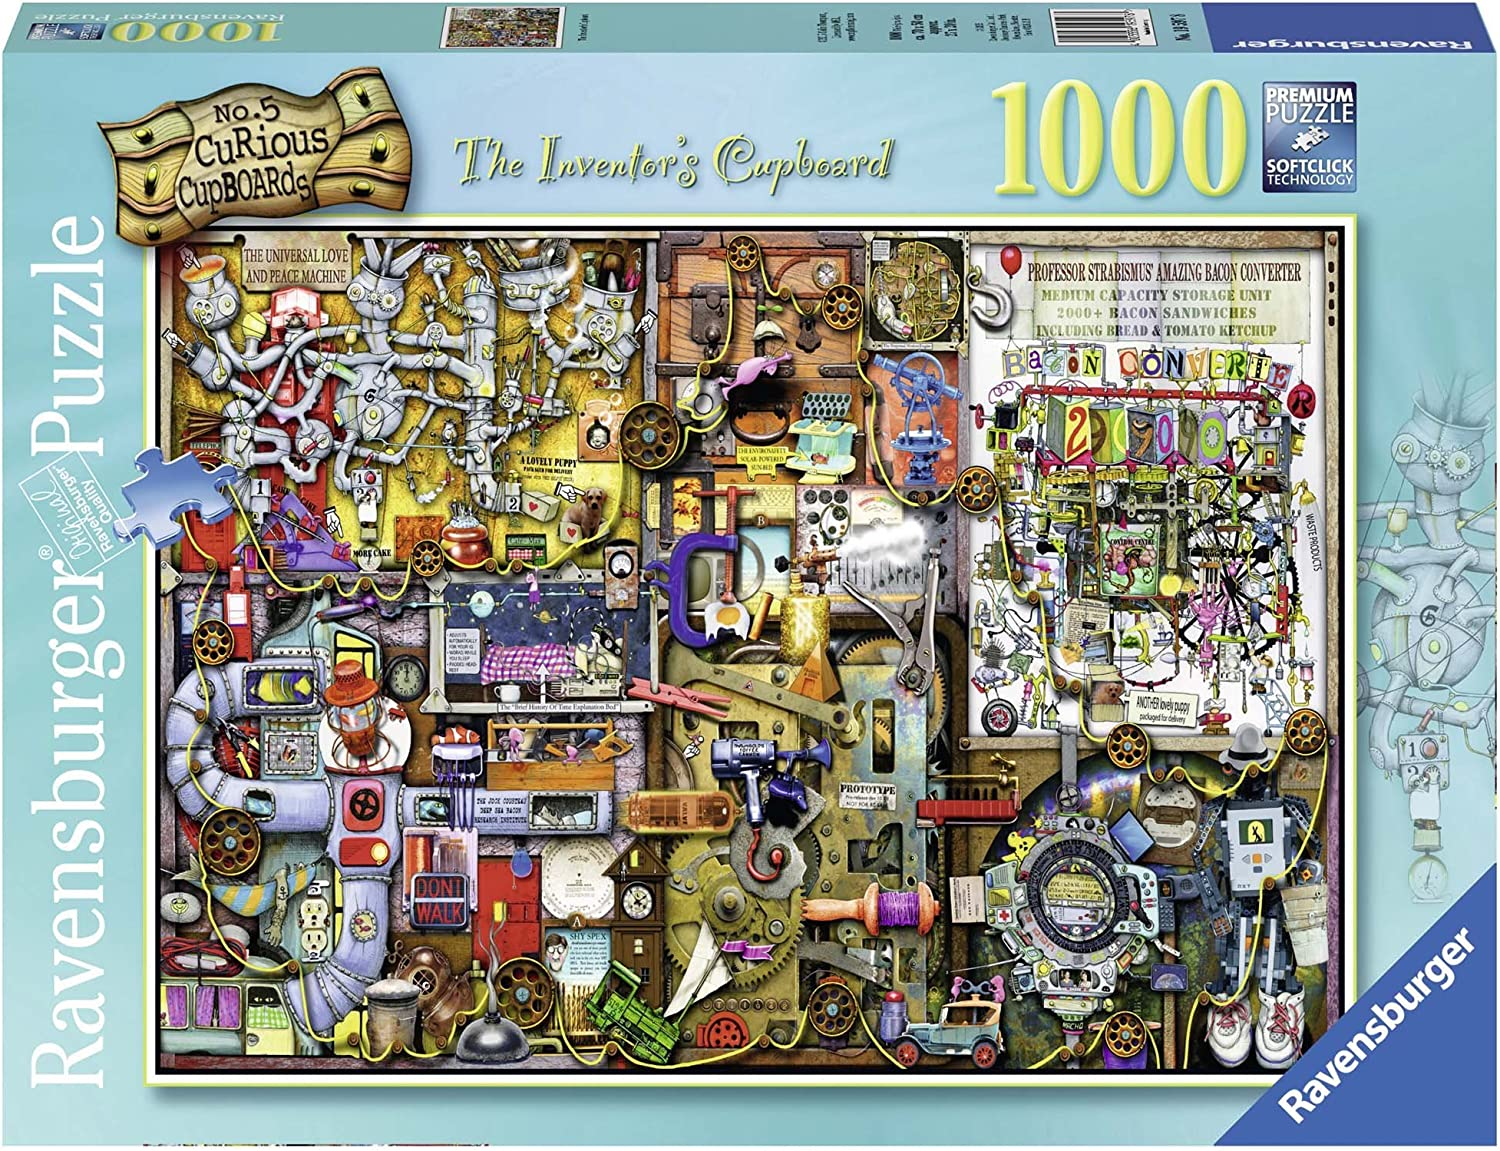 Ravensburger Colin Thompson - The Inventor's Cupboard, Rompecabezas de 1000 Piezas, 70 x 50 cm 195978